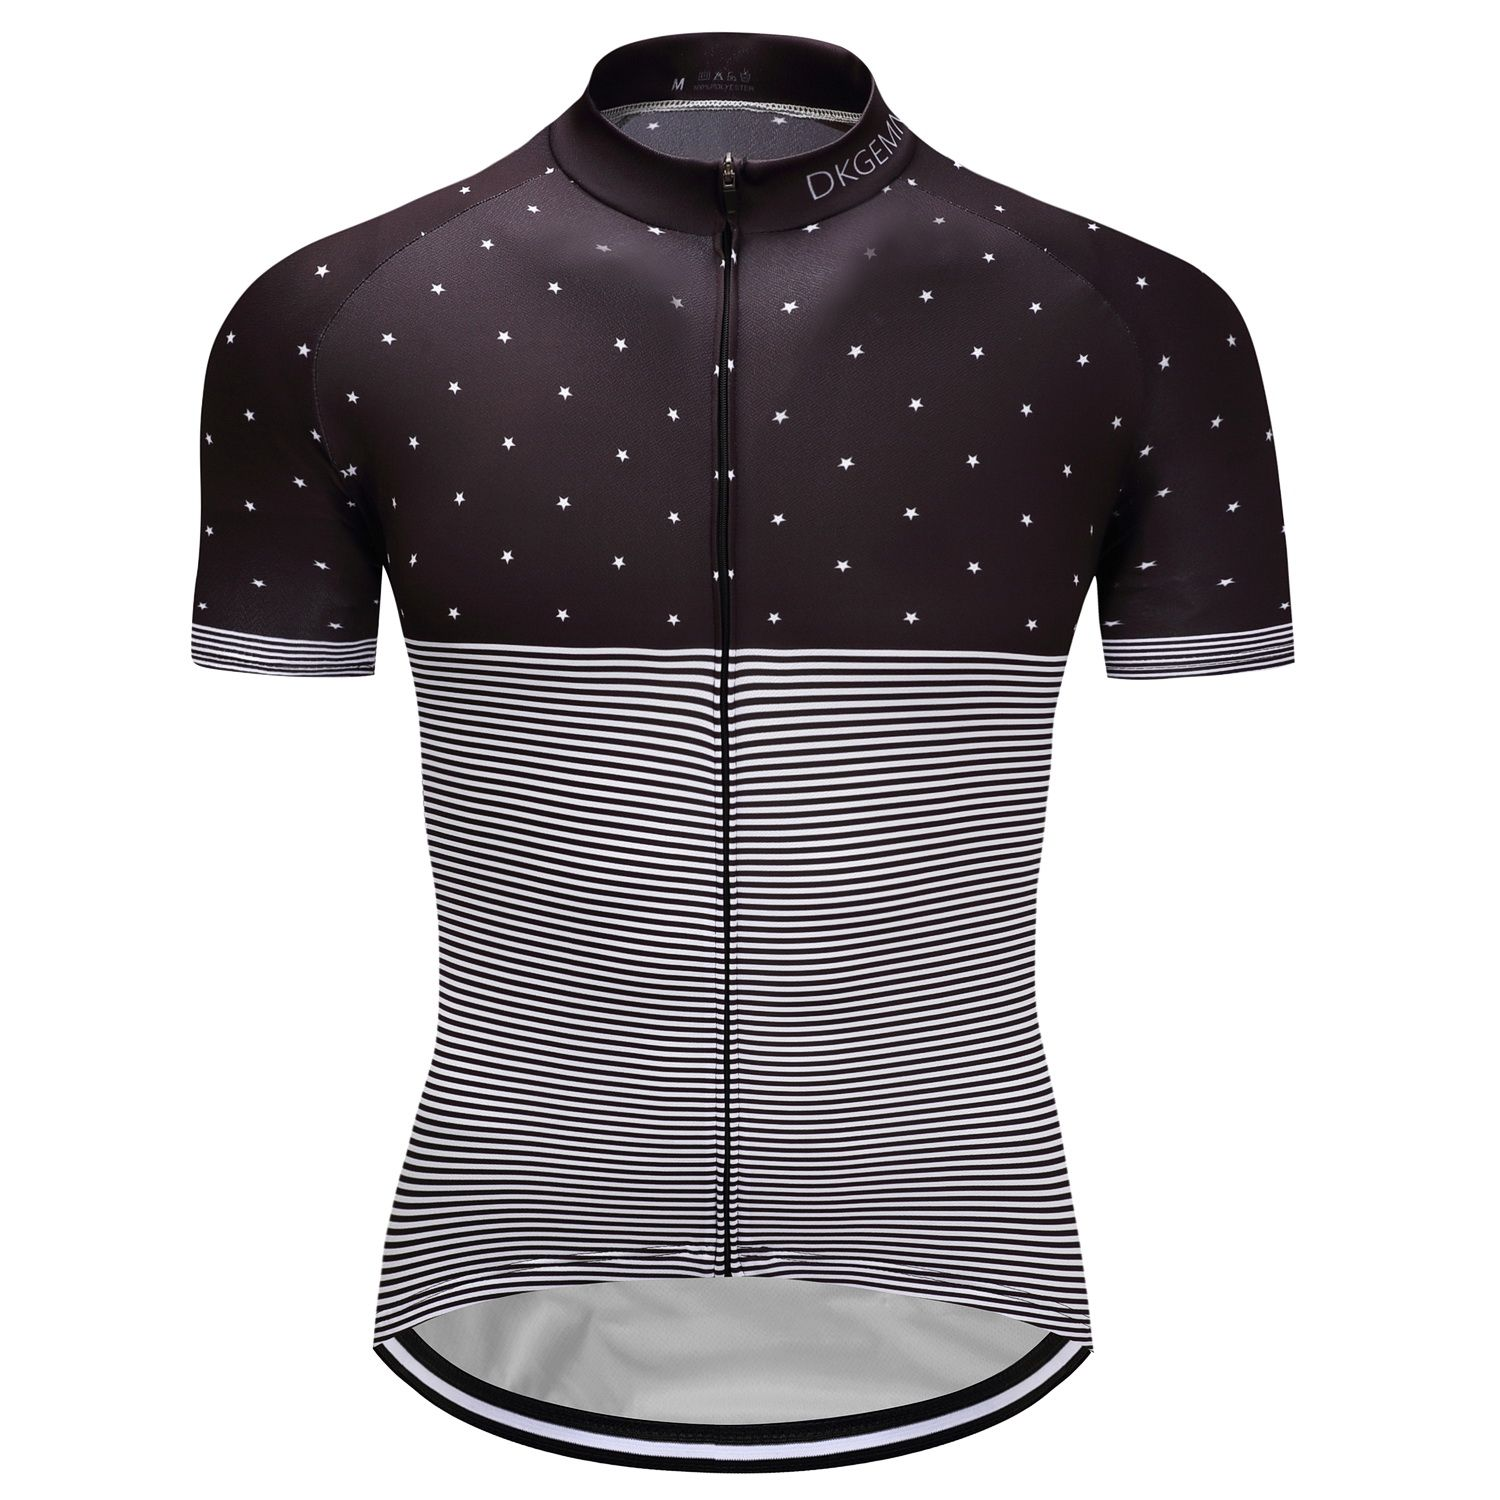 New Mens Cycling Short Sleeve Jerseys Tops 3 Pockets T-shirts Bicycle  Clothing e1ec9715f